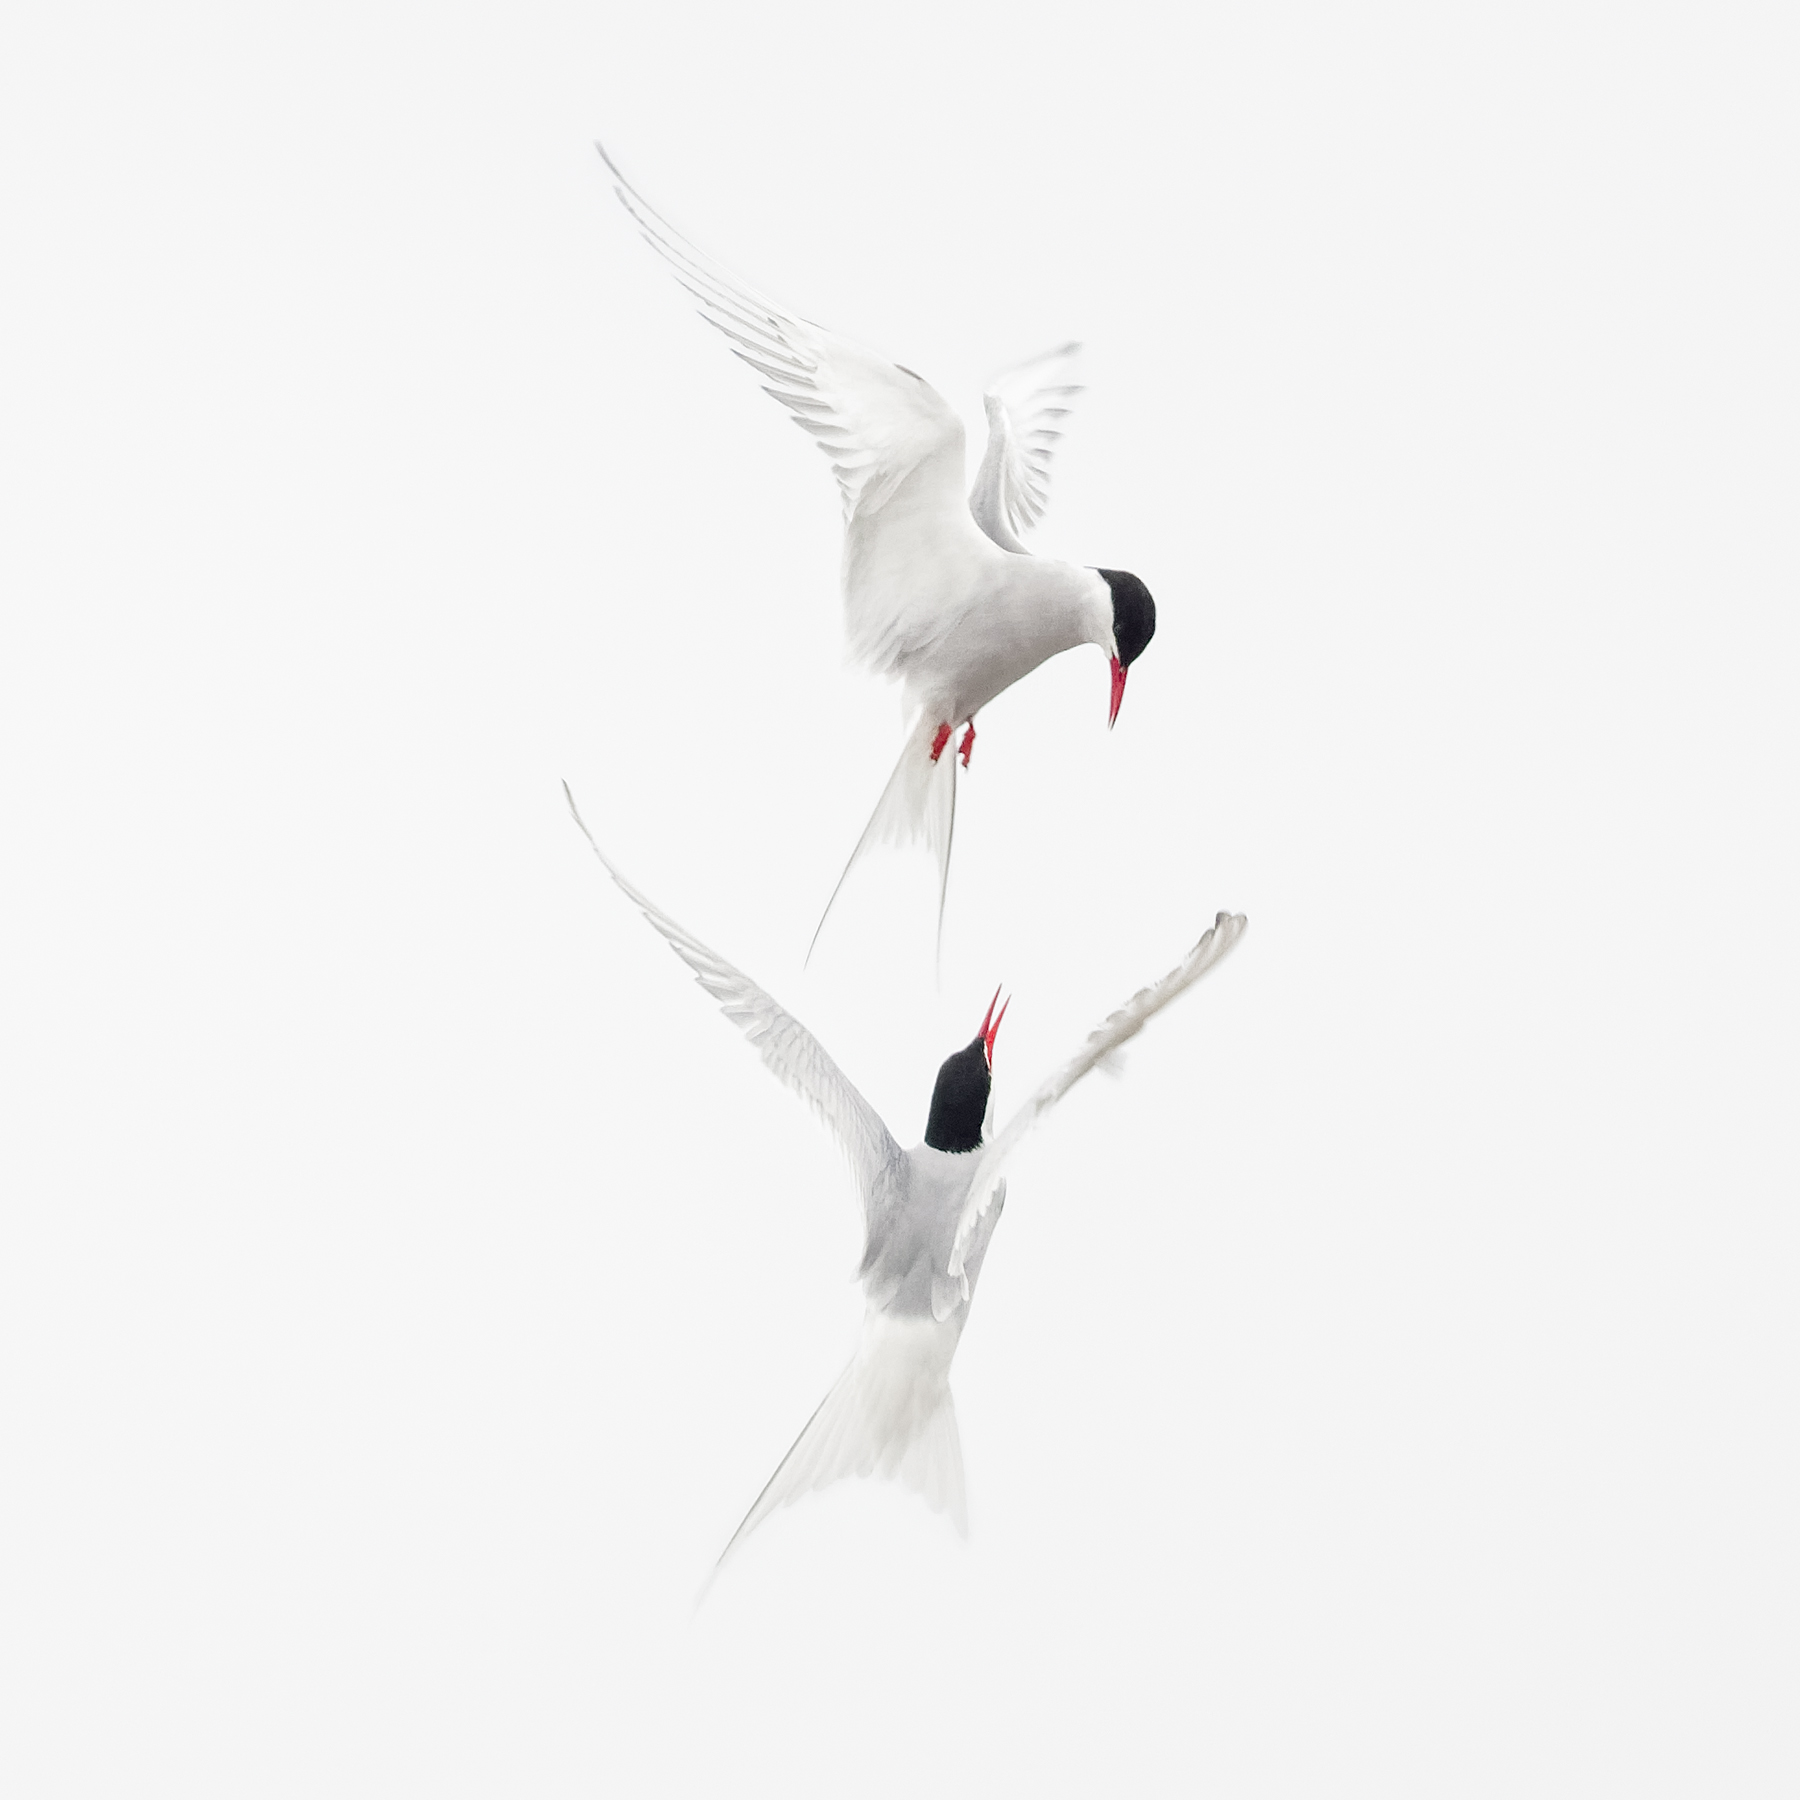 Brian_Jones_Arctic Terns Courtship Flight_Arctic Terns Courtship Flight 1_1.jpg